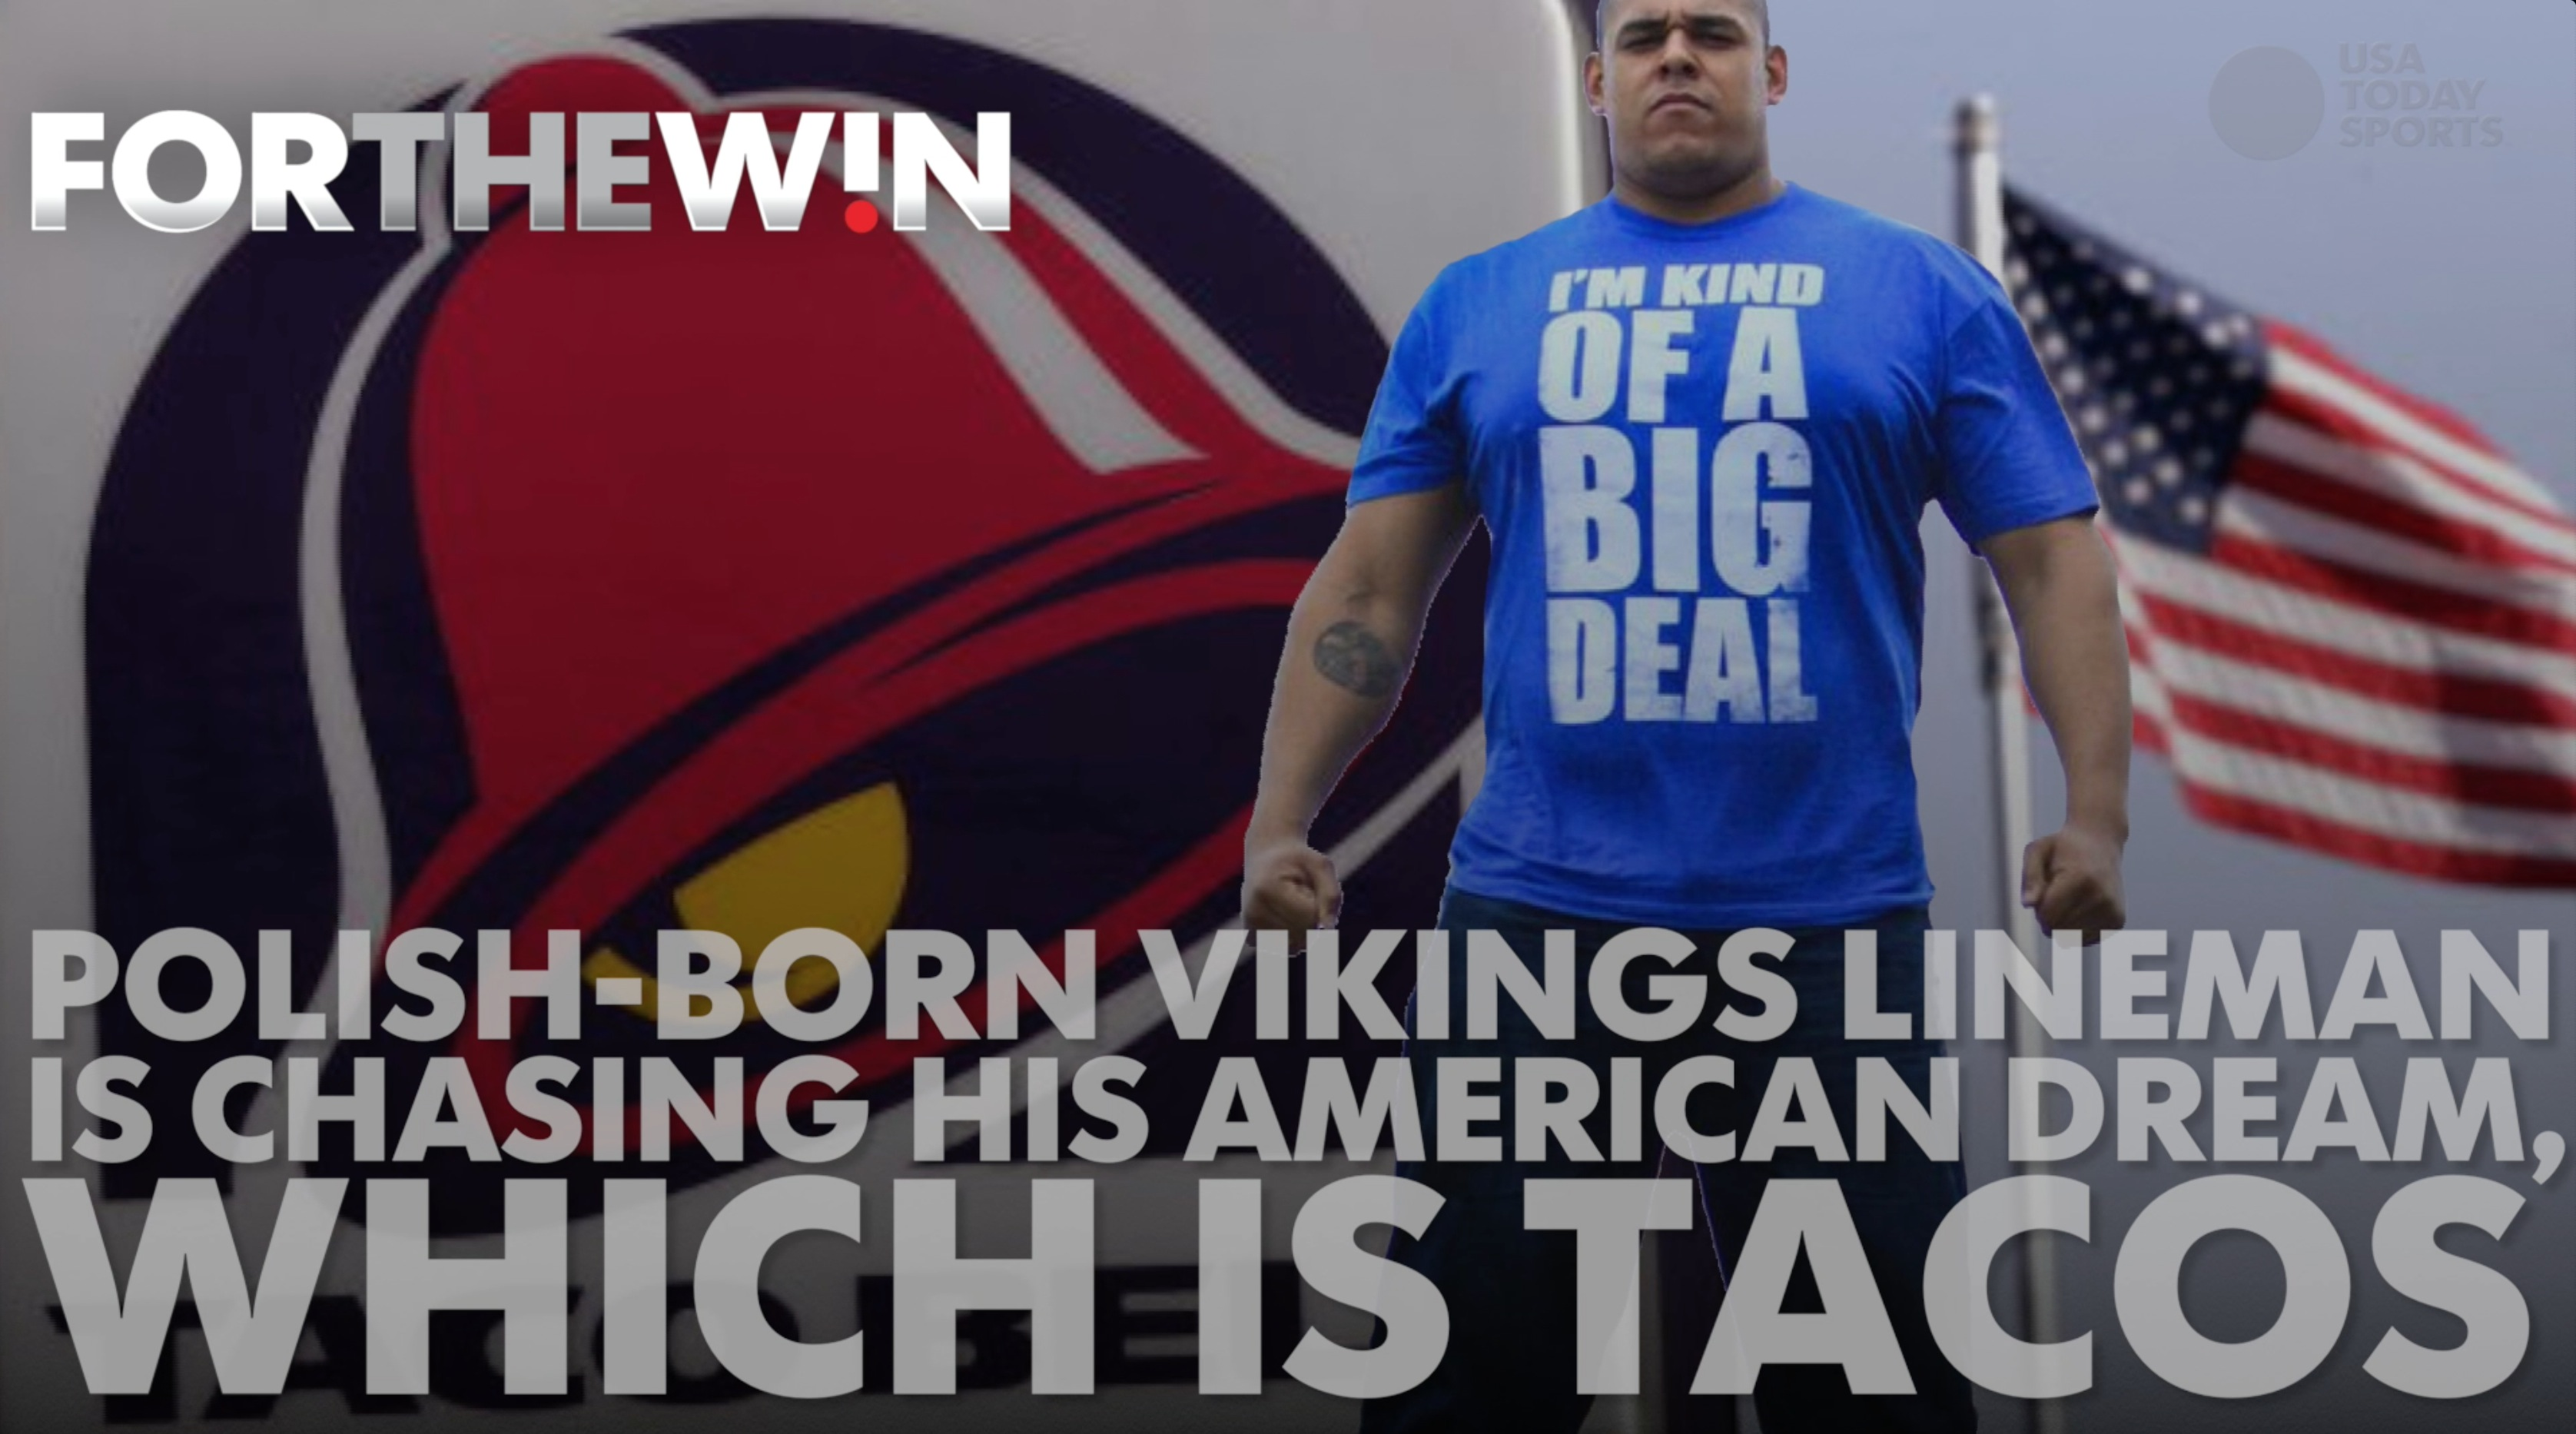 Polish-born Vikings lineman is chasing his American dream, which is tacos